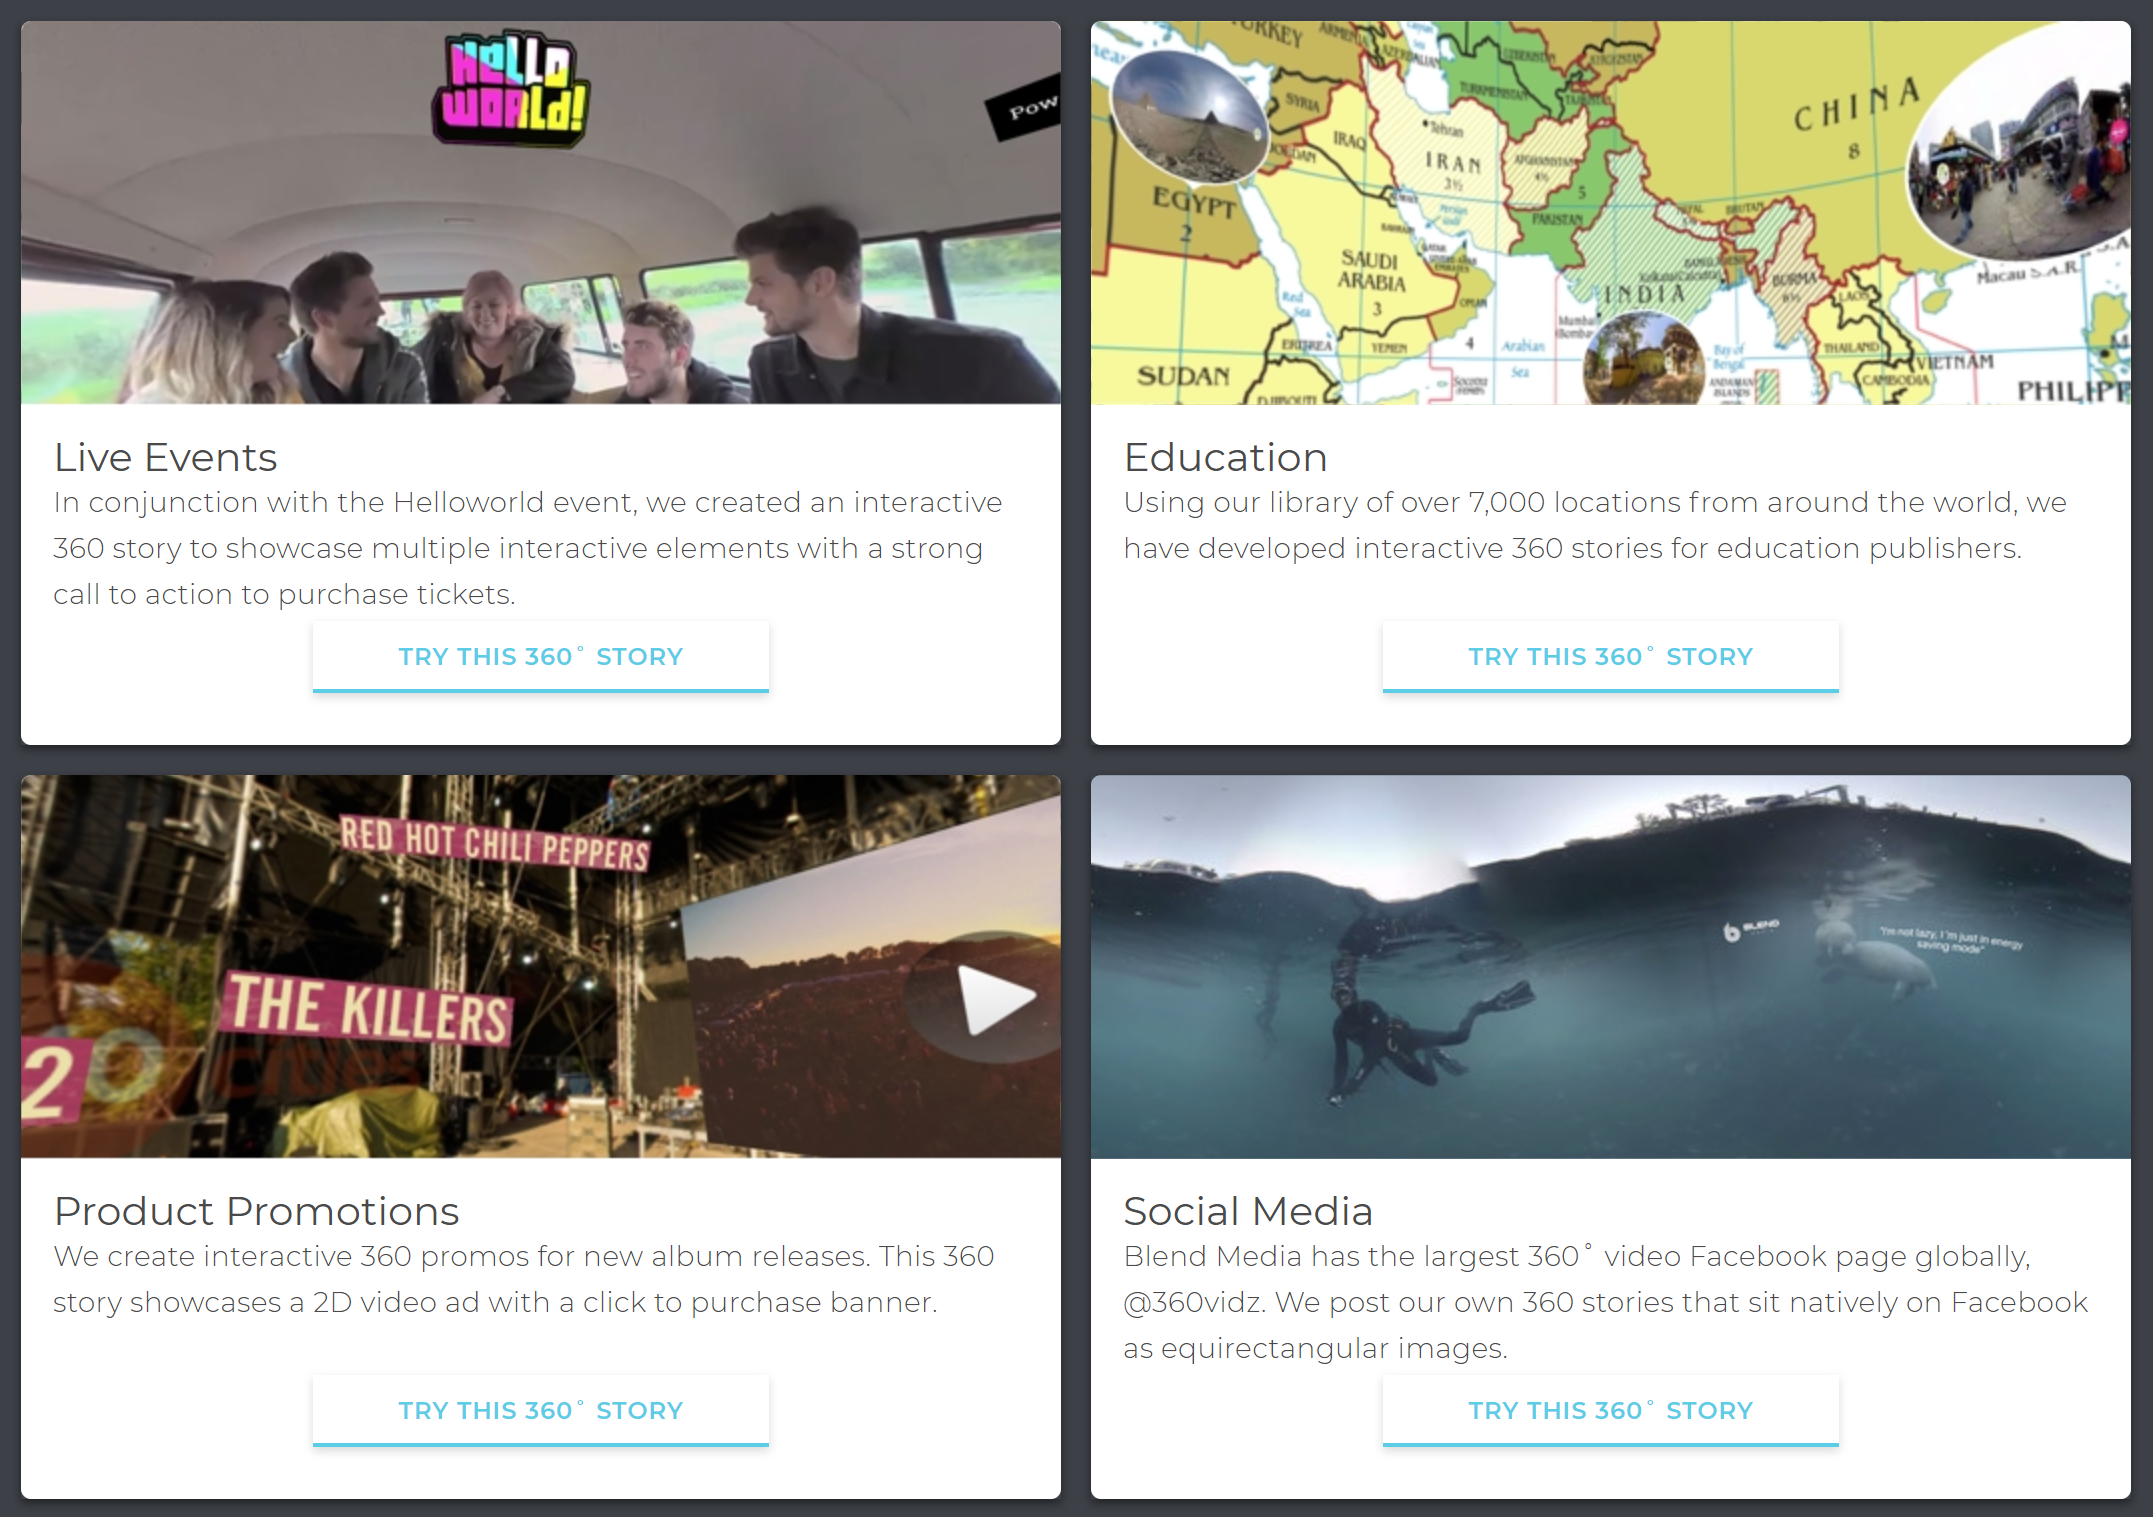 To see examples of what 360 Stories can do, visit Blend's website (linked below).